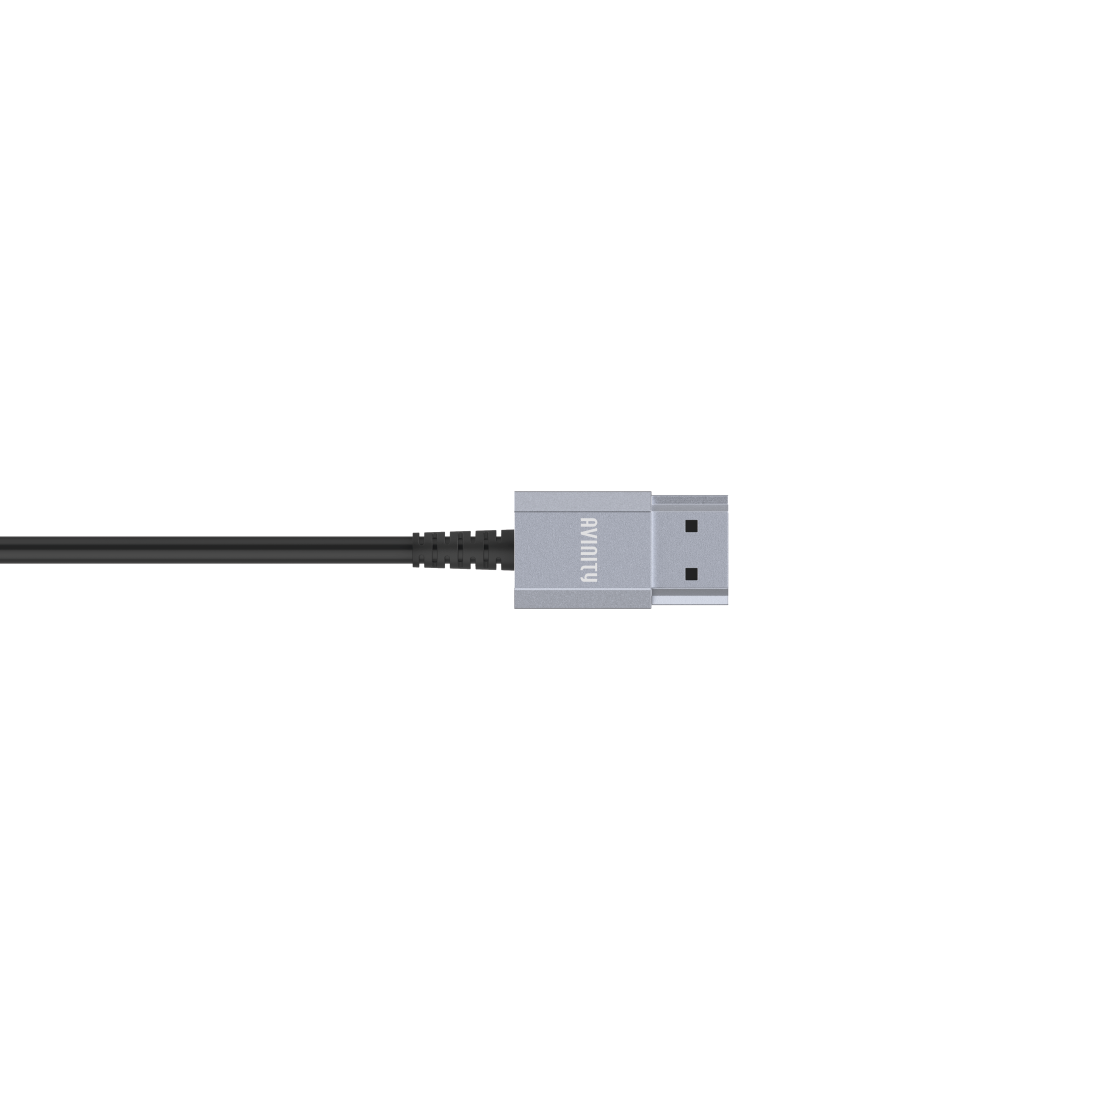 abx2 High-Res Image 2 - Avinity, Optical, Active HDMI™ Cable, Super-slim, Plug - Plug, 3.0 m